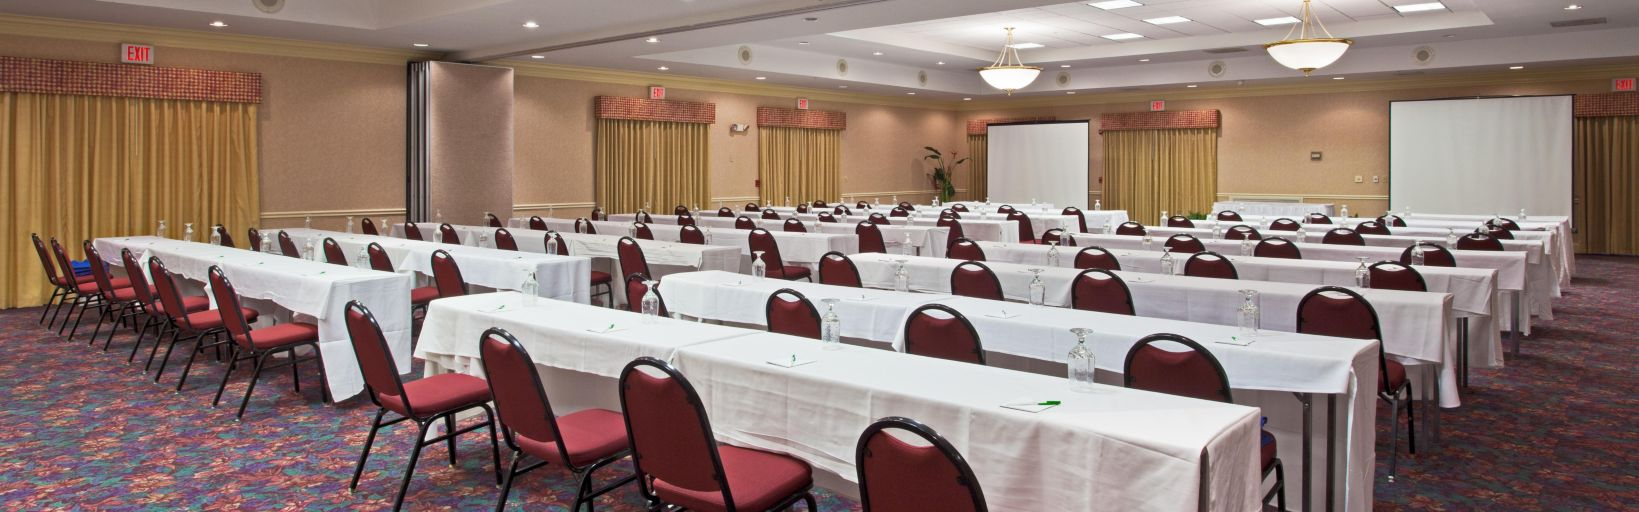 Our Key West Center Is Great For Weddings Or Meetings